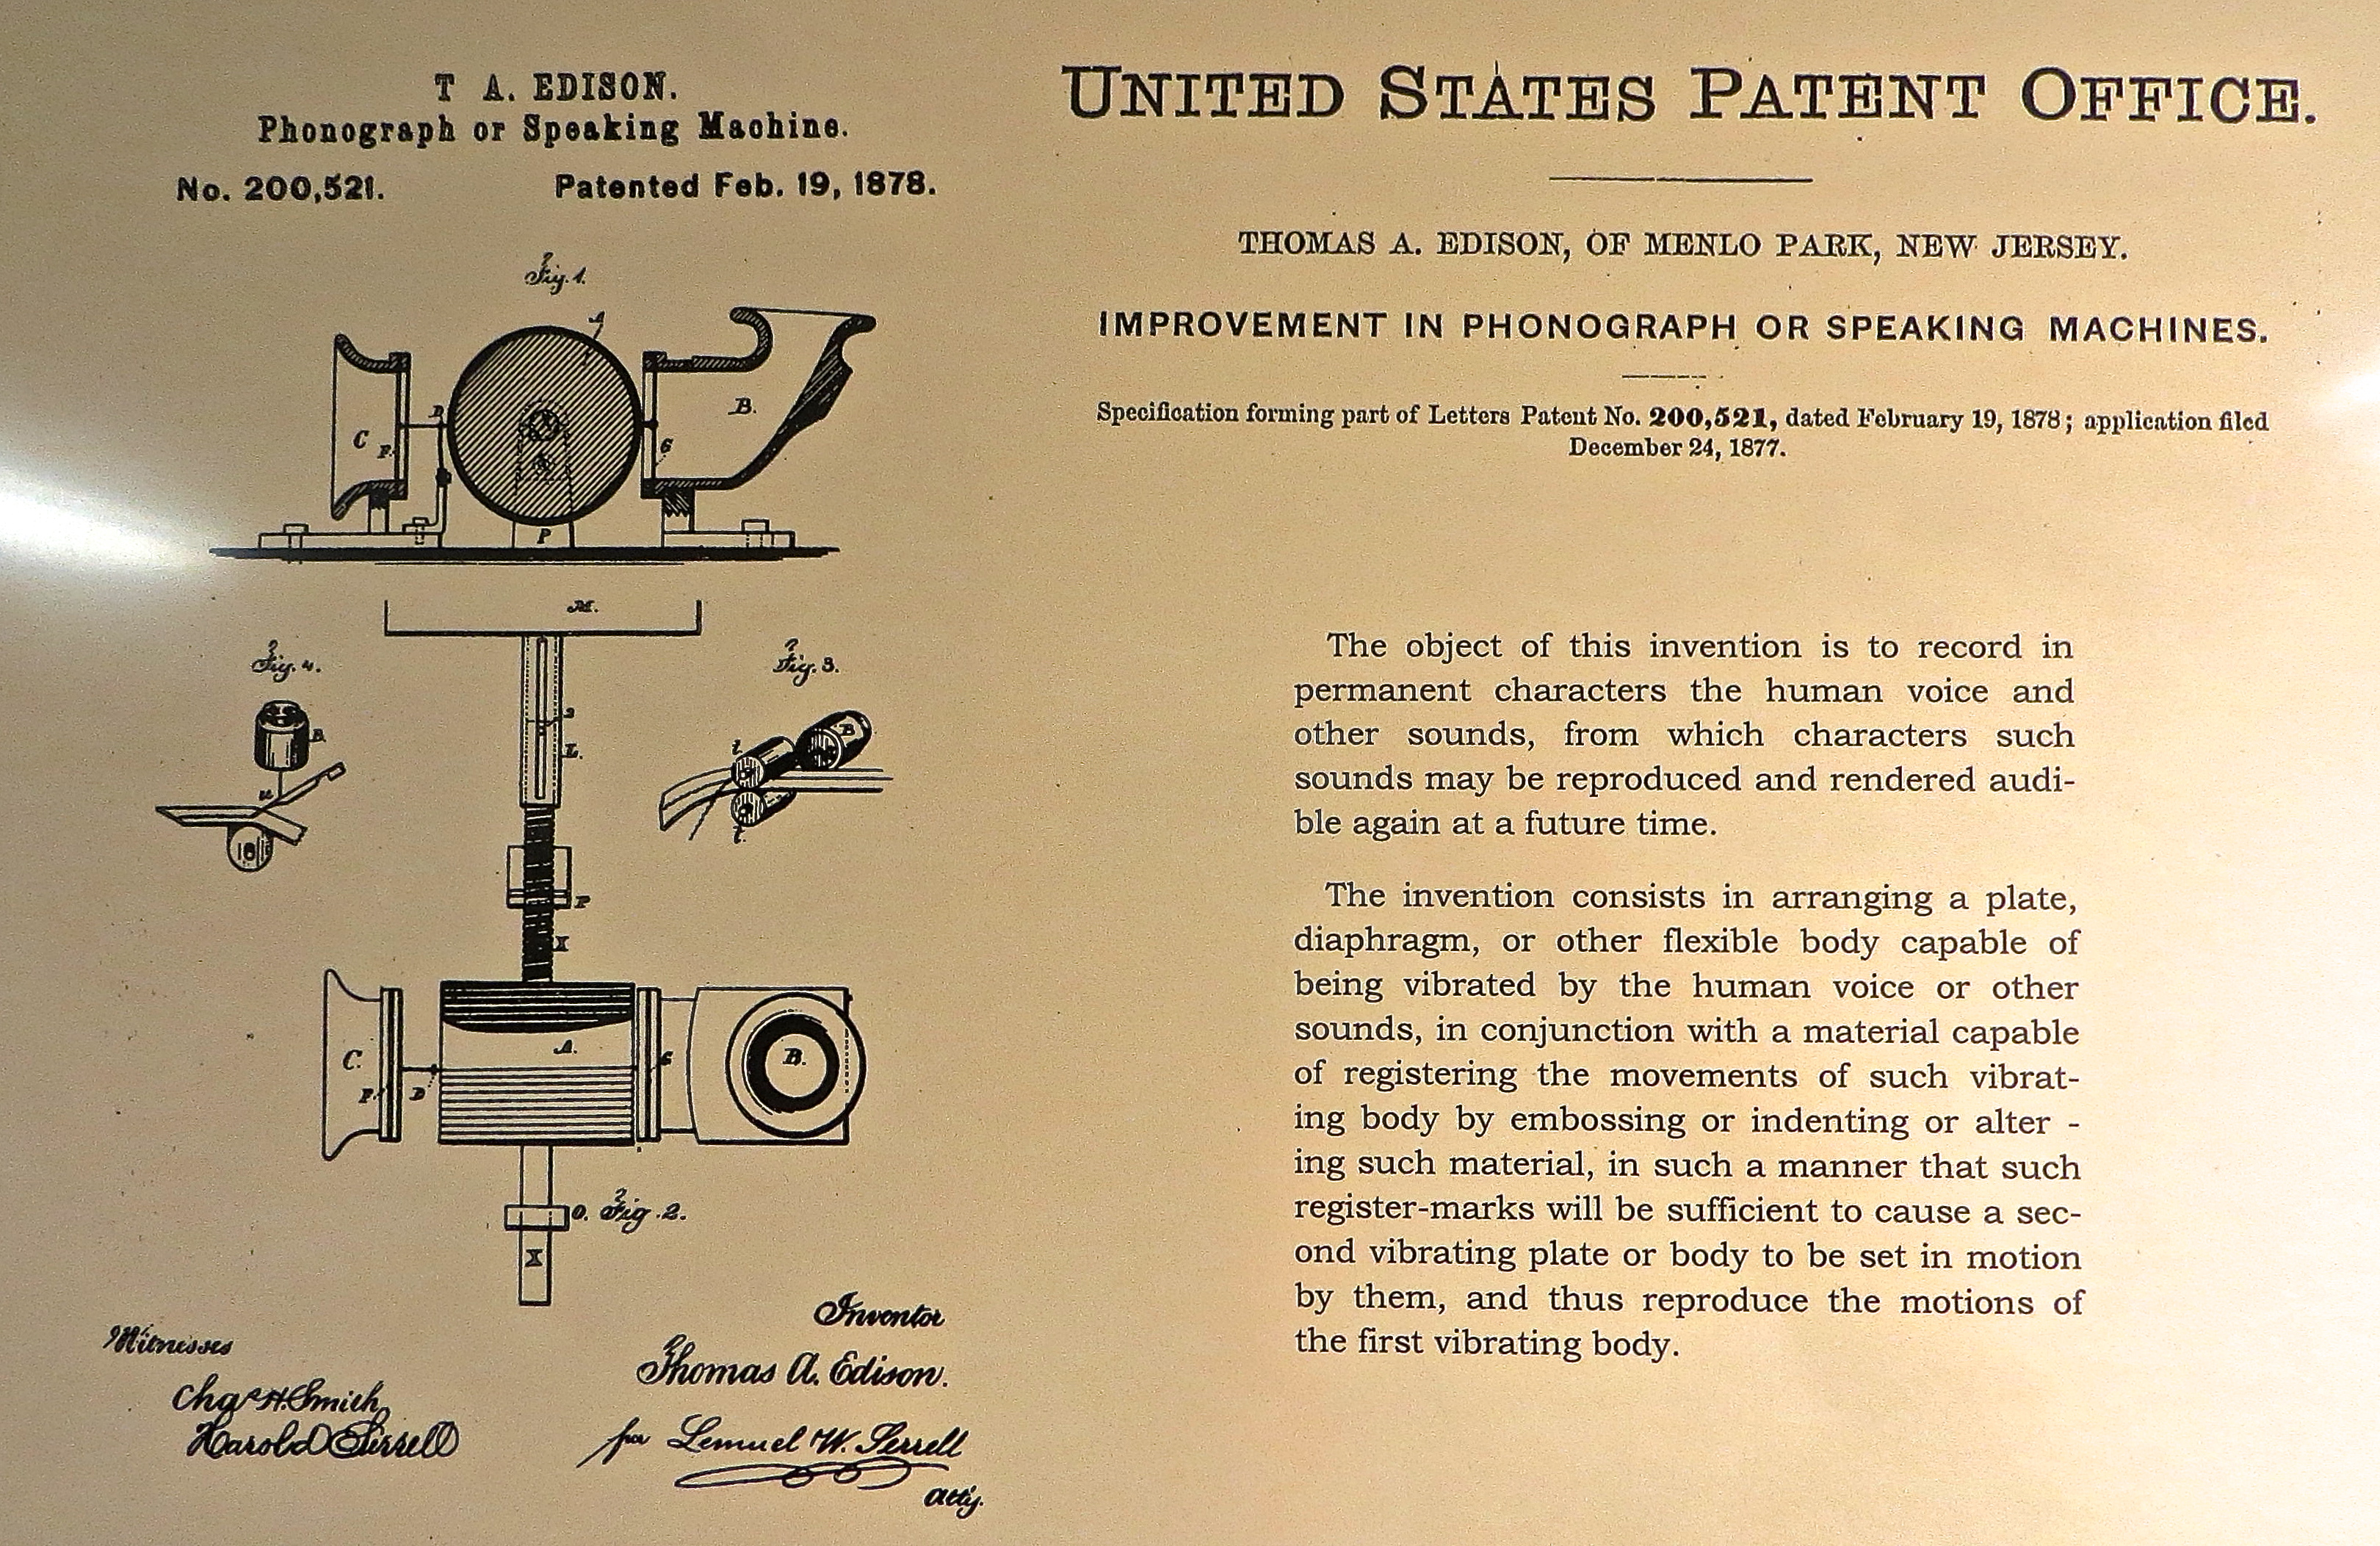 U.S. Patent Office application for an improvement to the phonograph by Thomas Edison, issued on February 19, 1878.